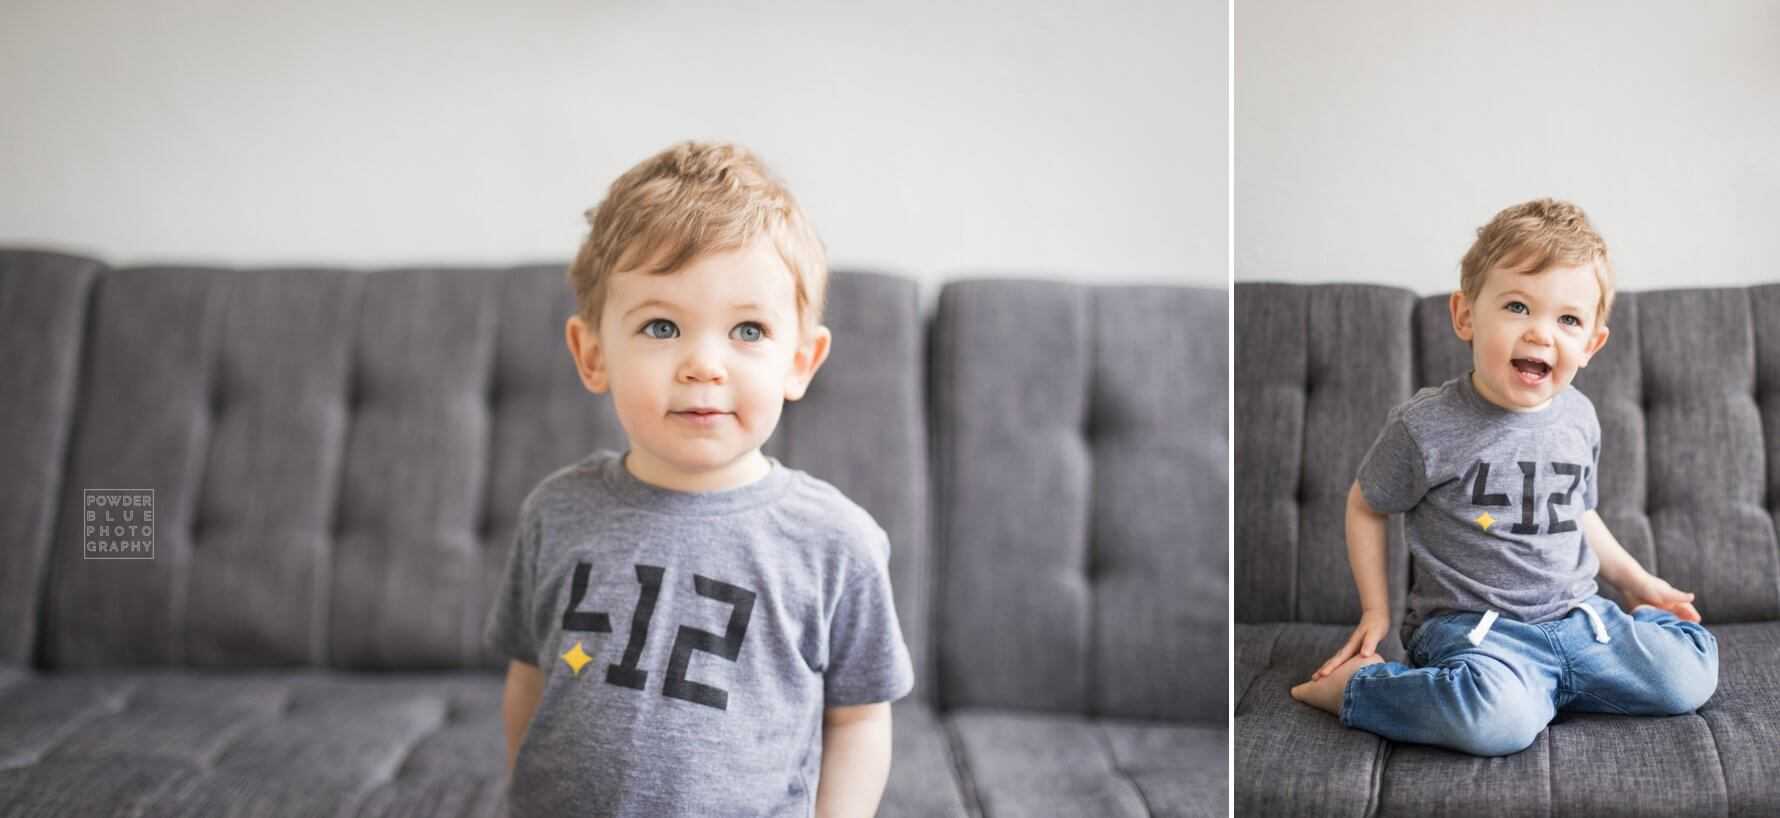 pittsburgh child photographer. boy in commonwealth press kids shirt.